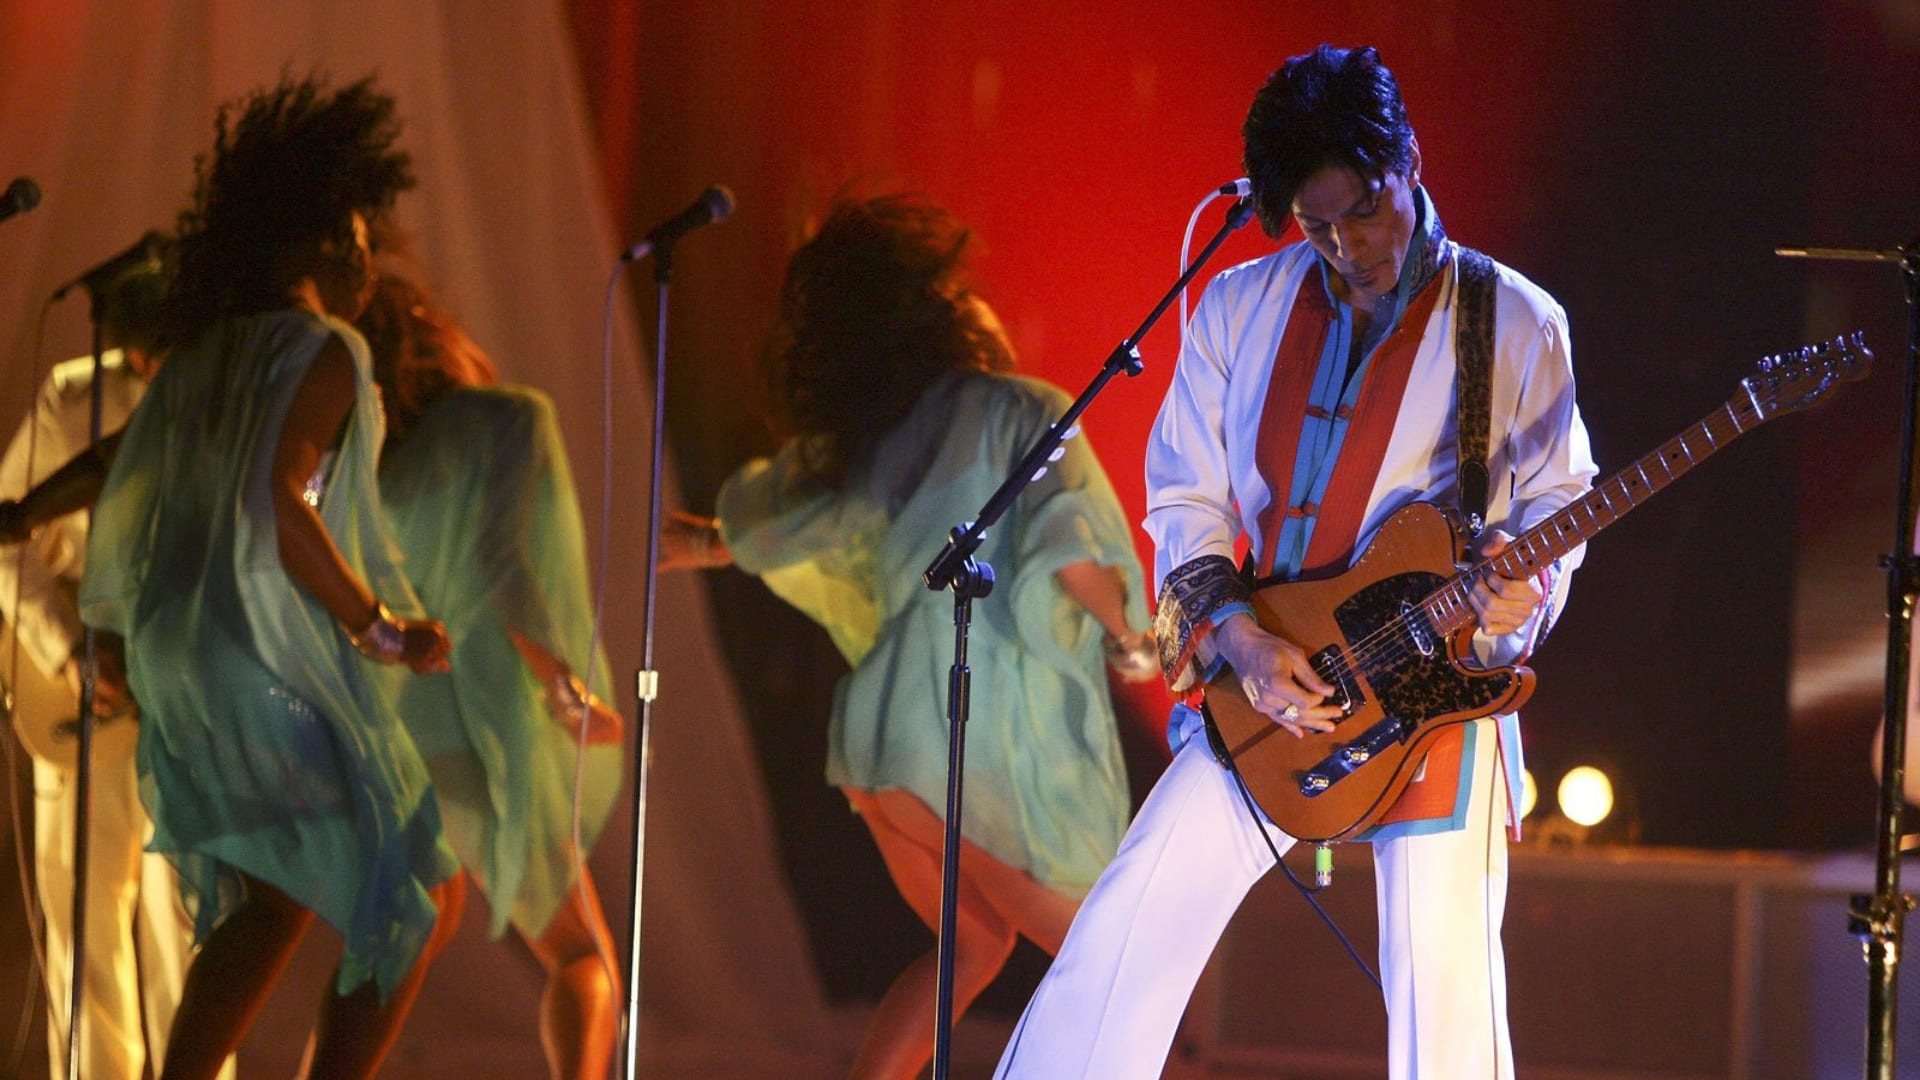 Photo of prince the singer